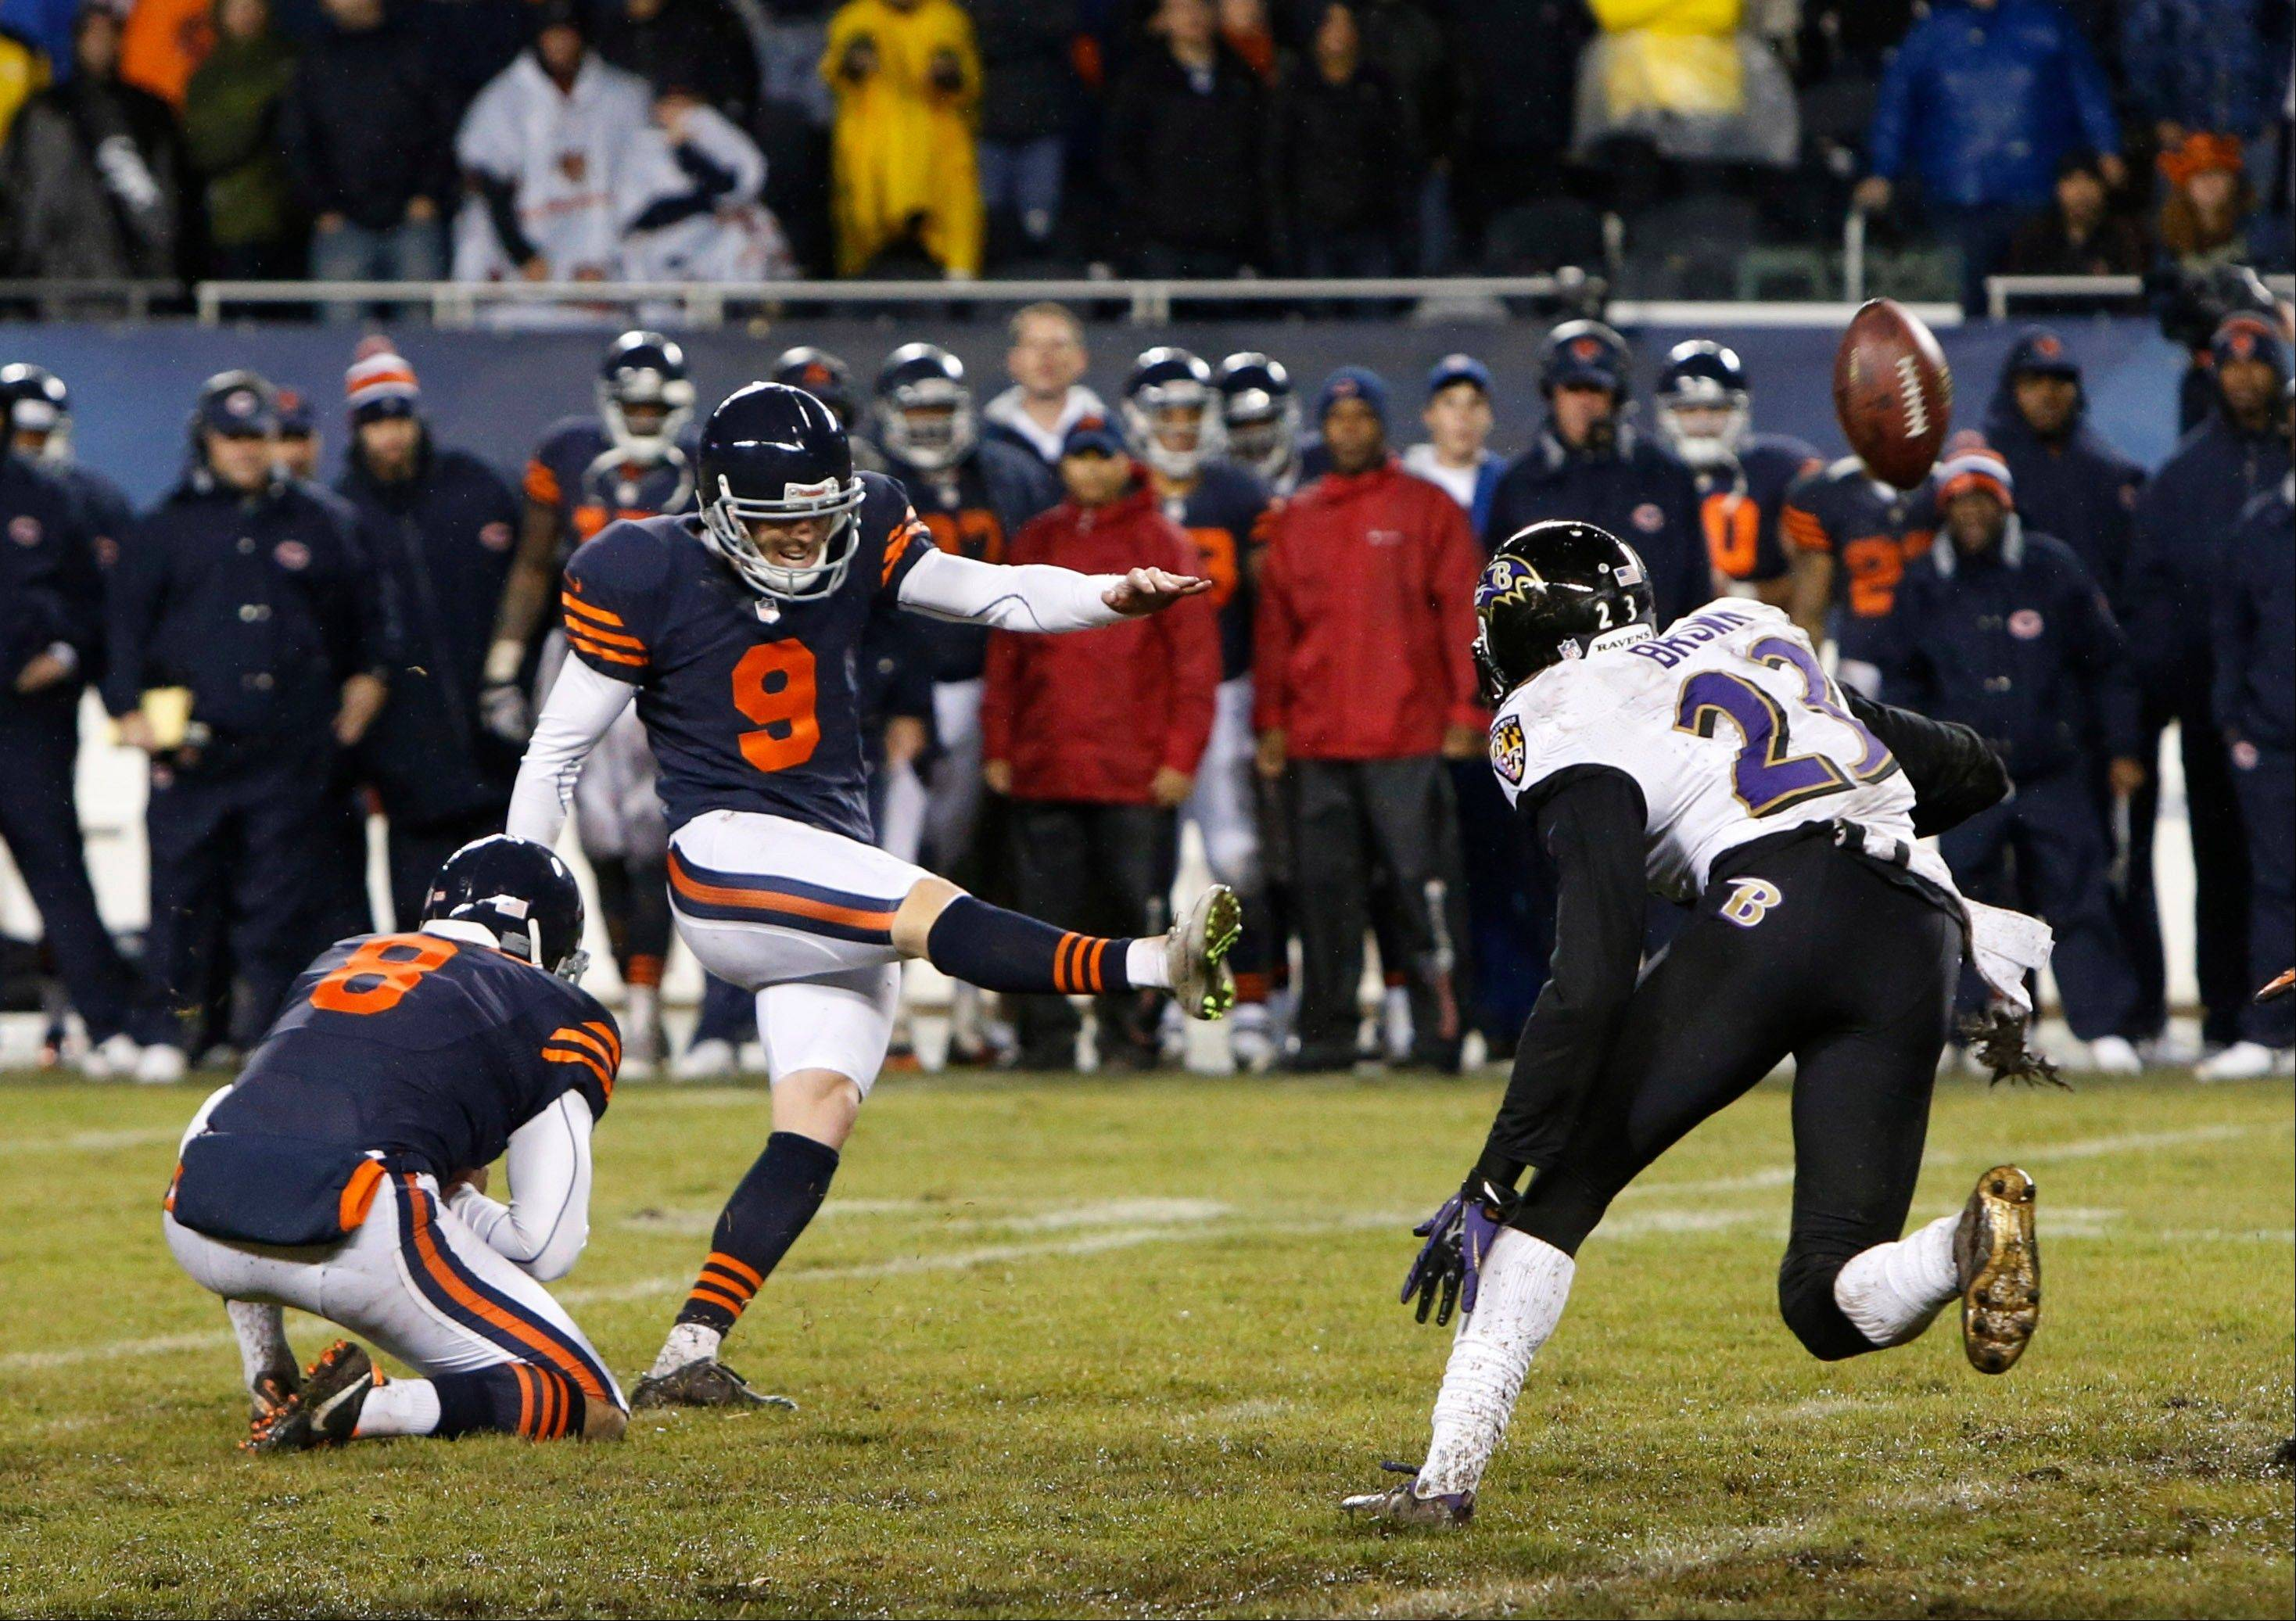 Chicago Bears kicker Robbie Gould (9) kicks the game-winning field goal in overtime to beat the Baltimore Ravens 23-20 in an NFL football game, Sunday, Nov. 17, 2013, in Chicago. Holding the ball is punter Adam Podlesh (8). At right is Ravens defensive back Chykie Brown (23).